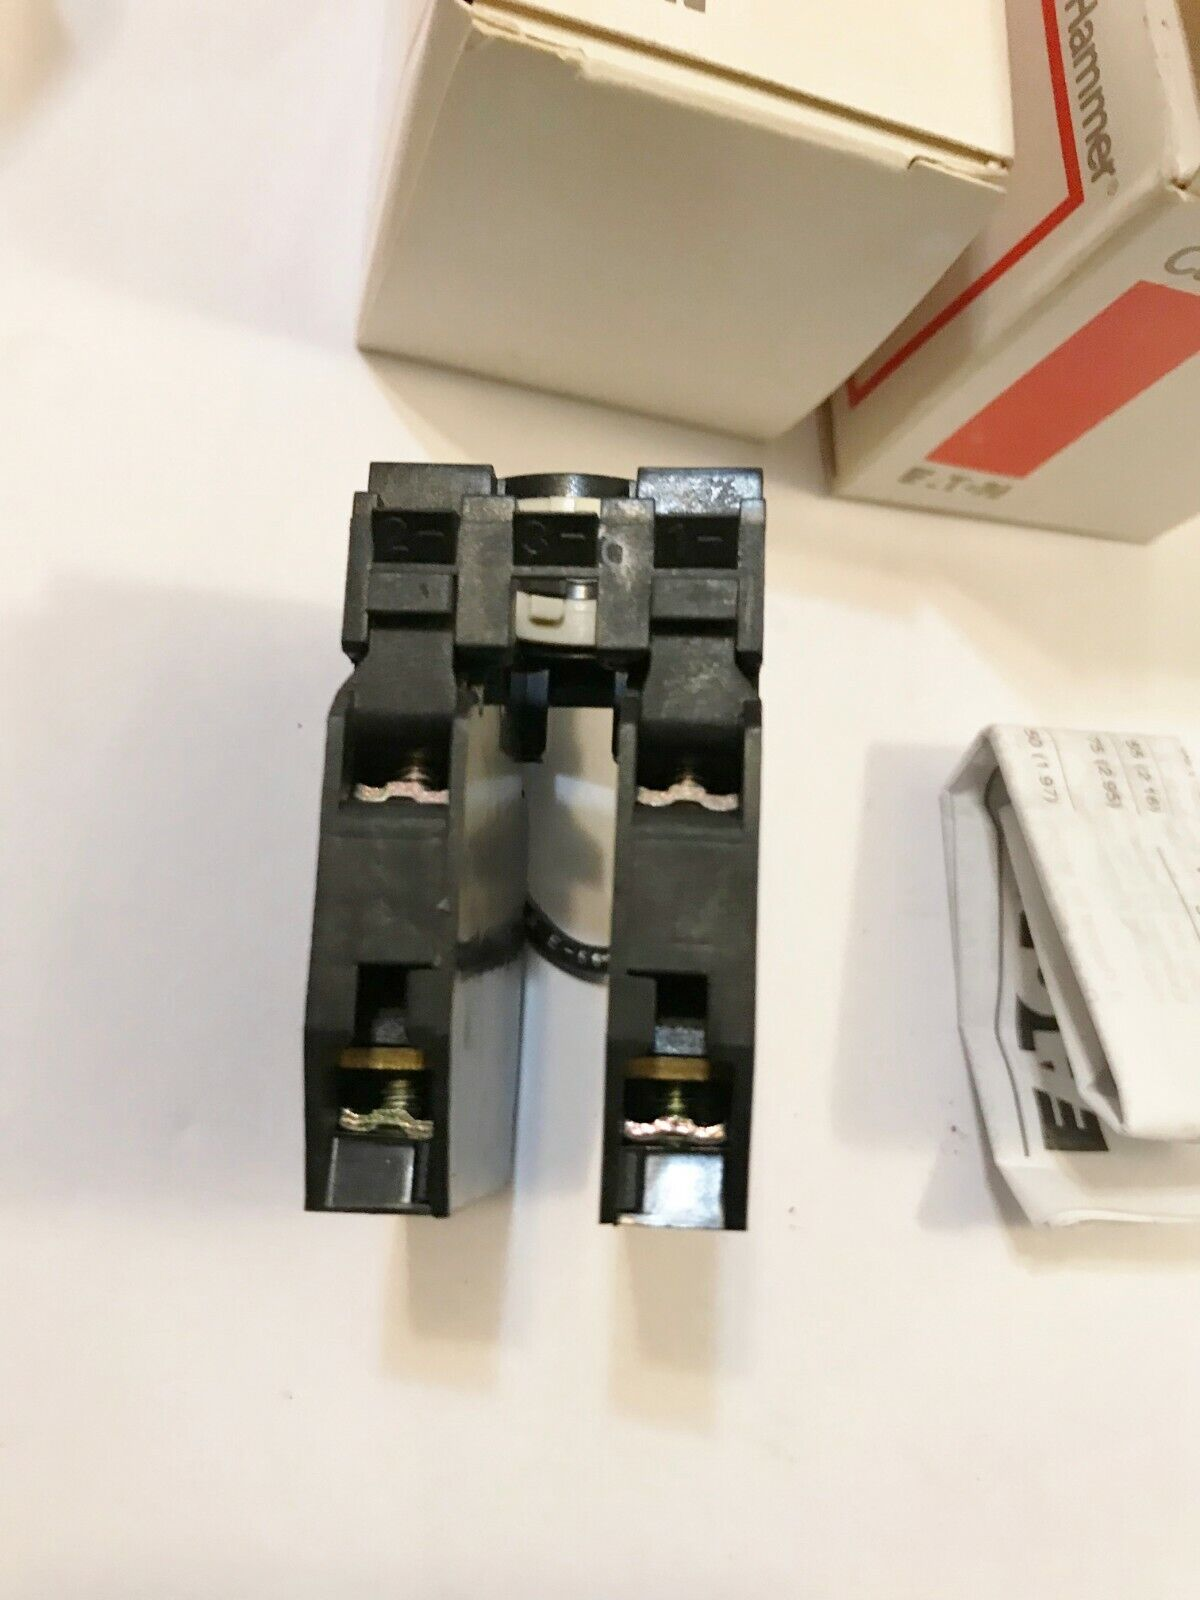 NEW IN BOX EATON CUTLER HAMMER E22B22 CONTACT BLOCKS PRE-WIRED BEST PRICE - $15.95